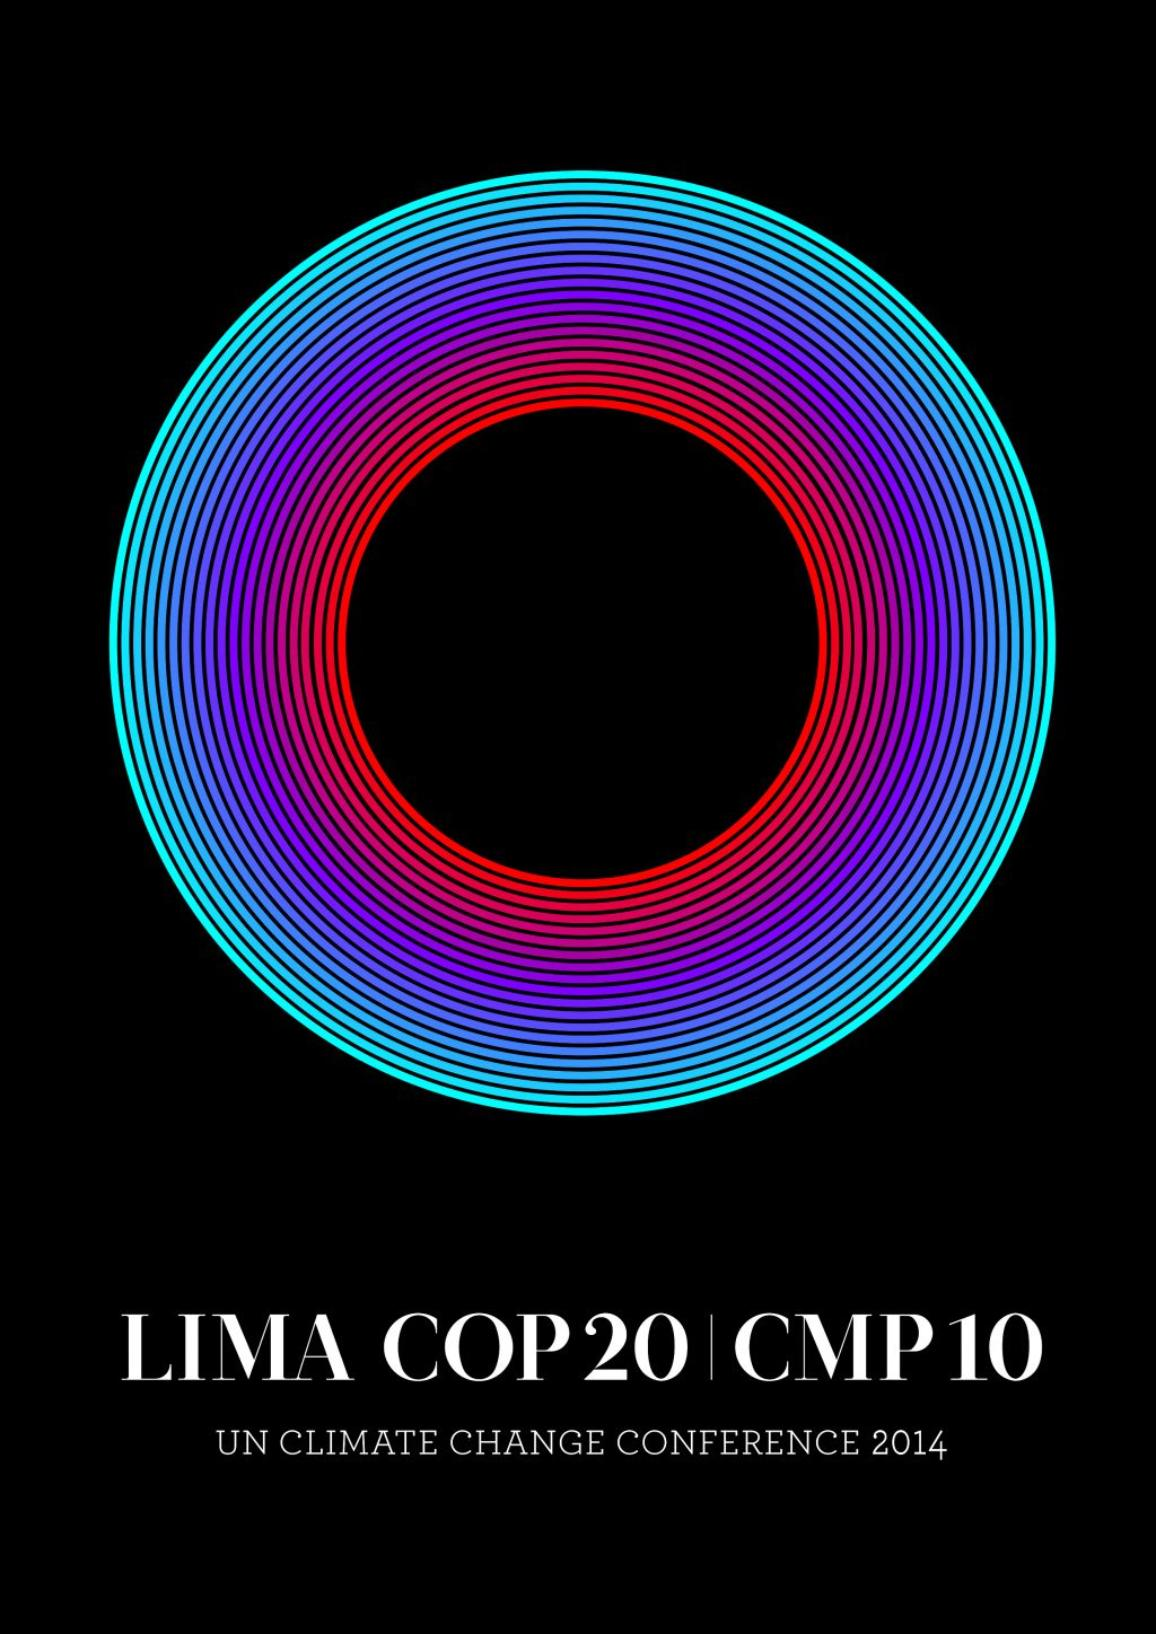 Official logo of the COP20, UN Climate Change Conference in Lima